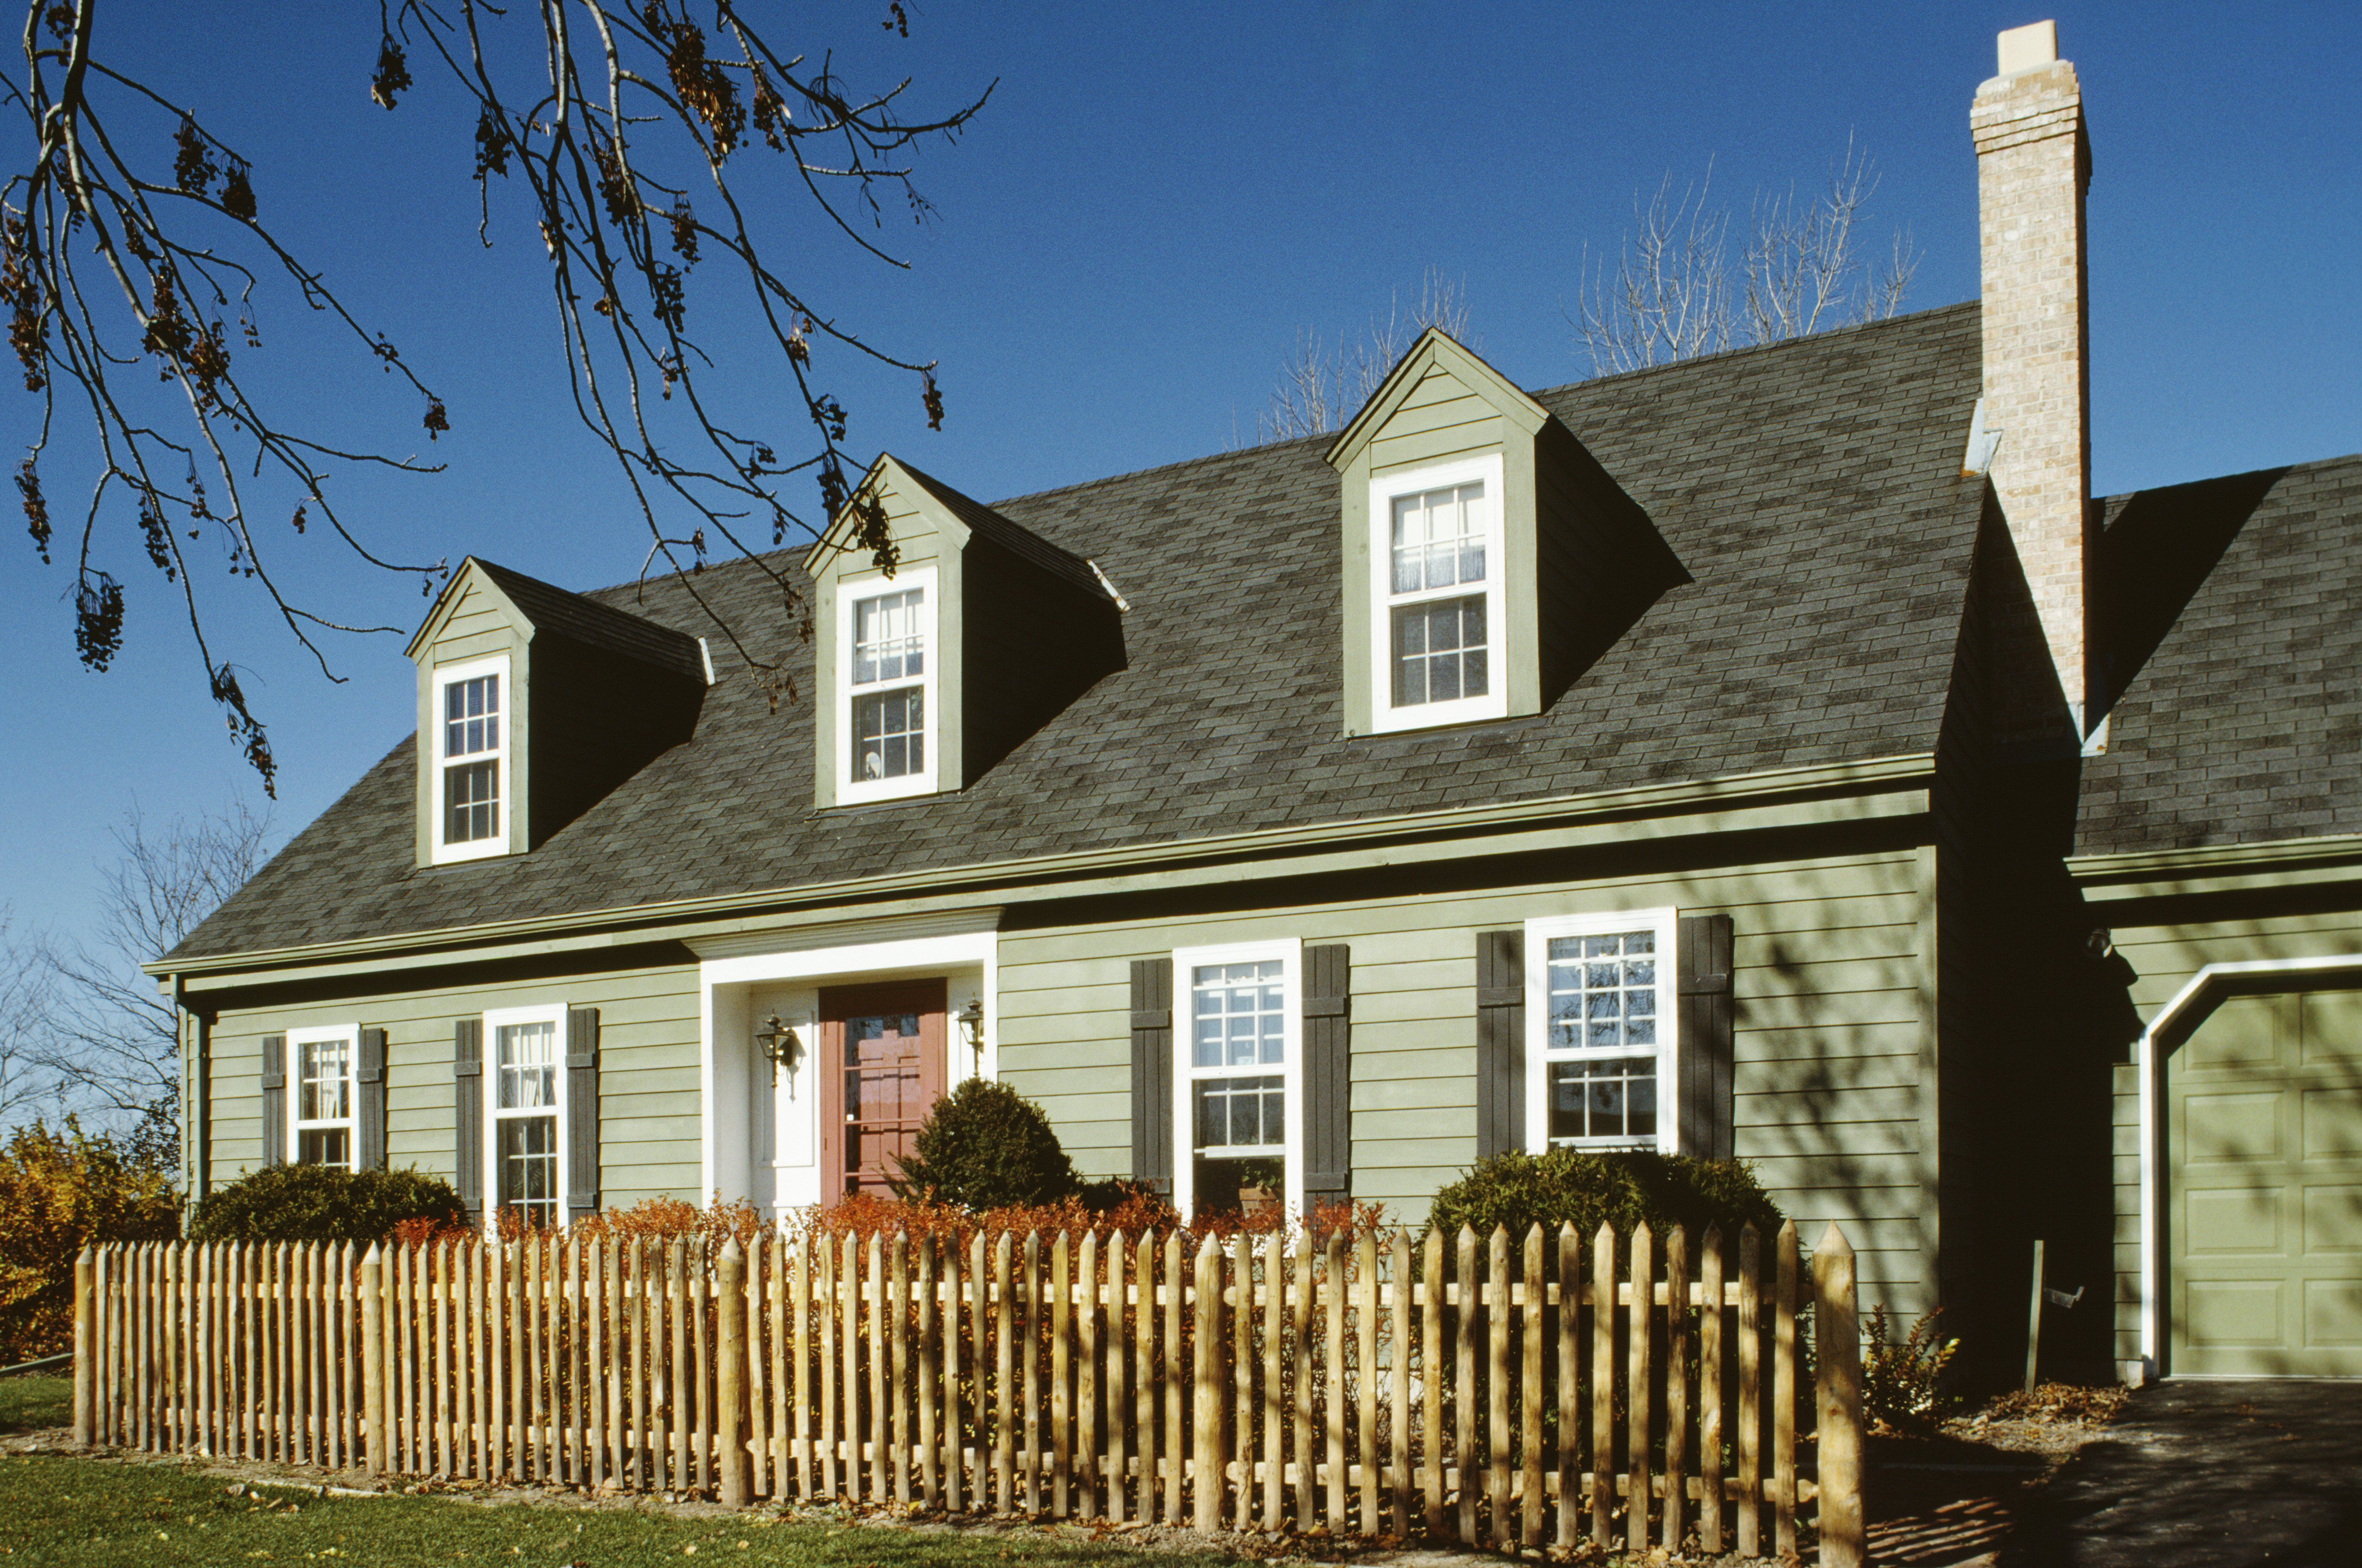 Green Cape Cod style with 3 dormers, 5 bay facade, with entryway recessed beneath a slight roof overhang